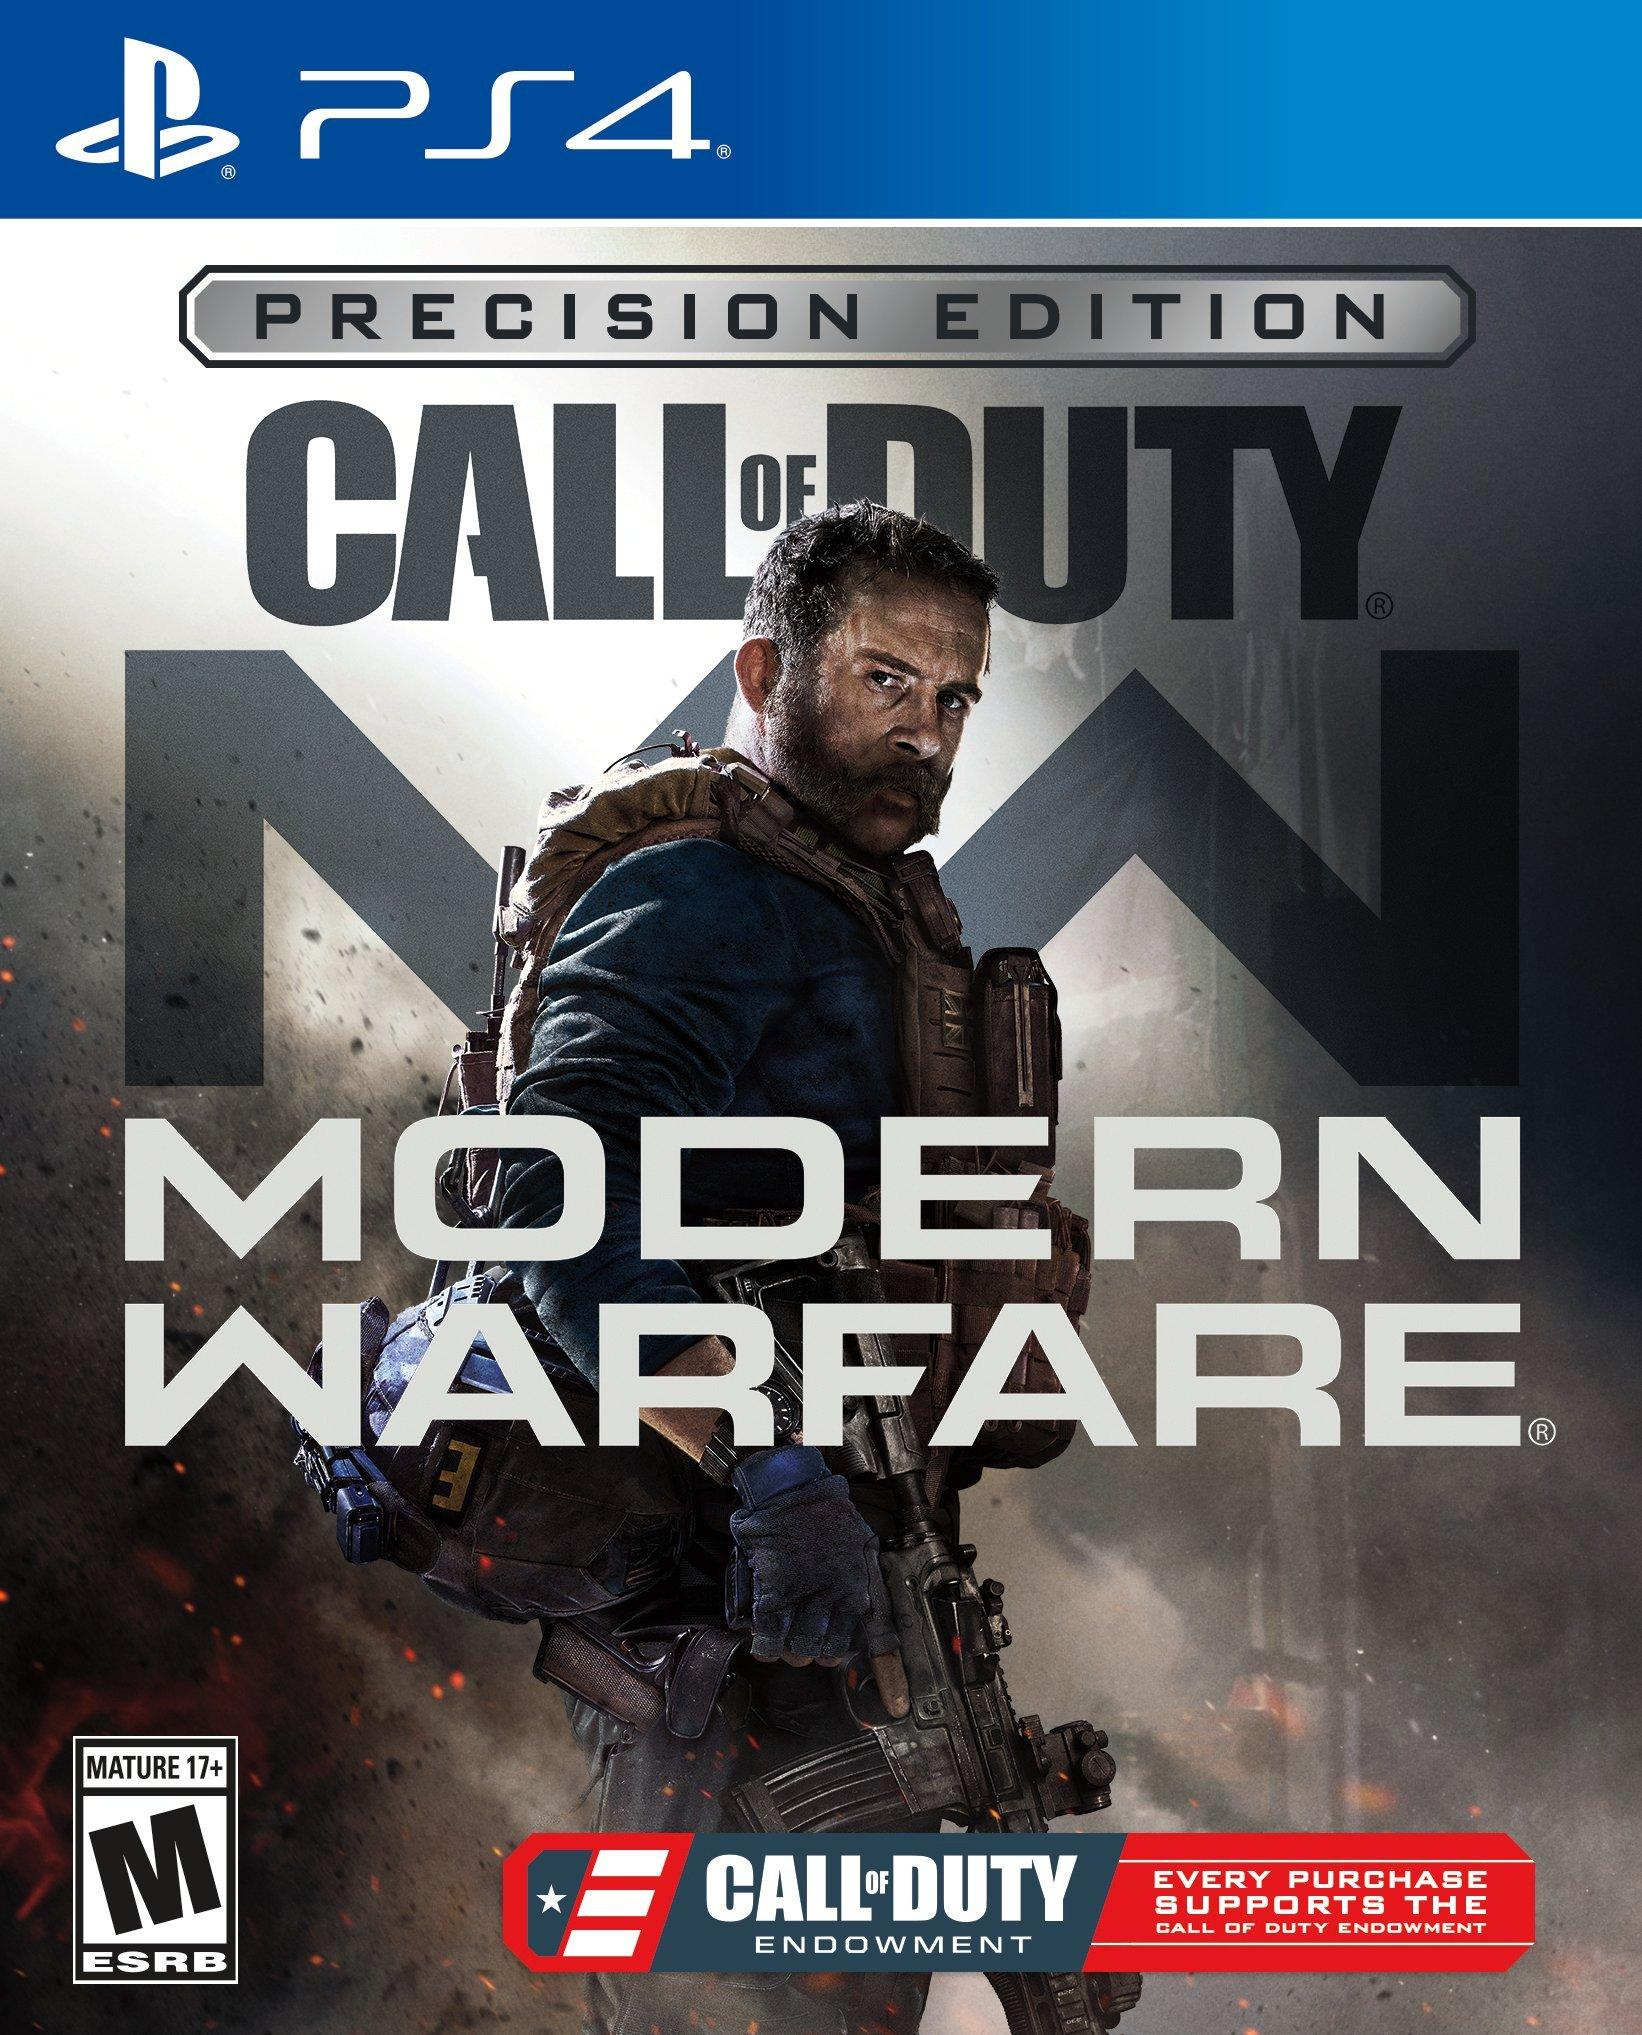 Call Of Duty Modern Warfare C O D E Precision Edition Only At